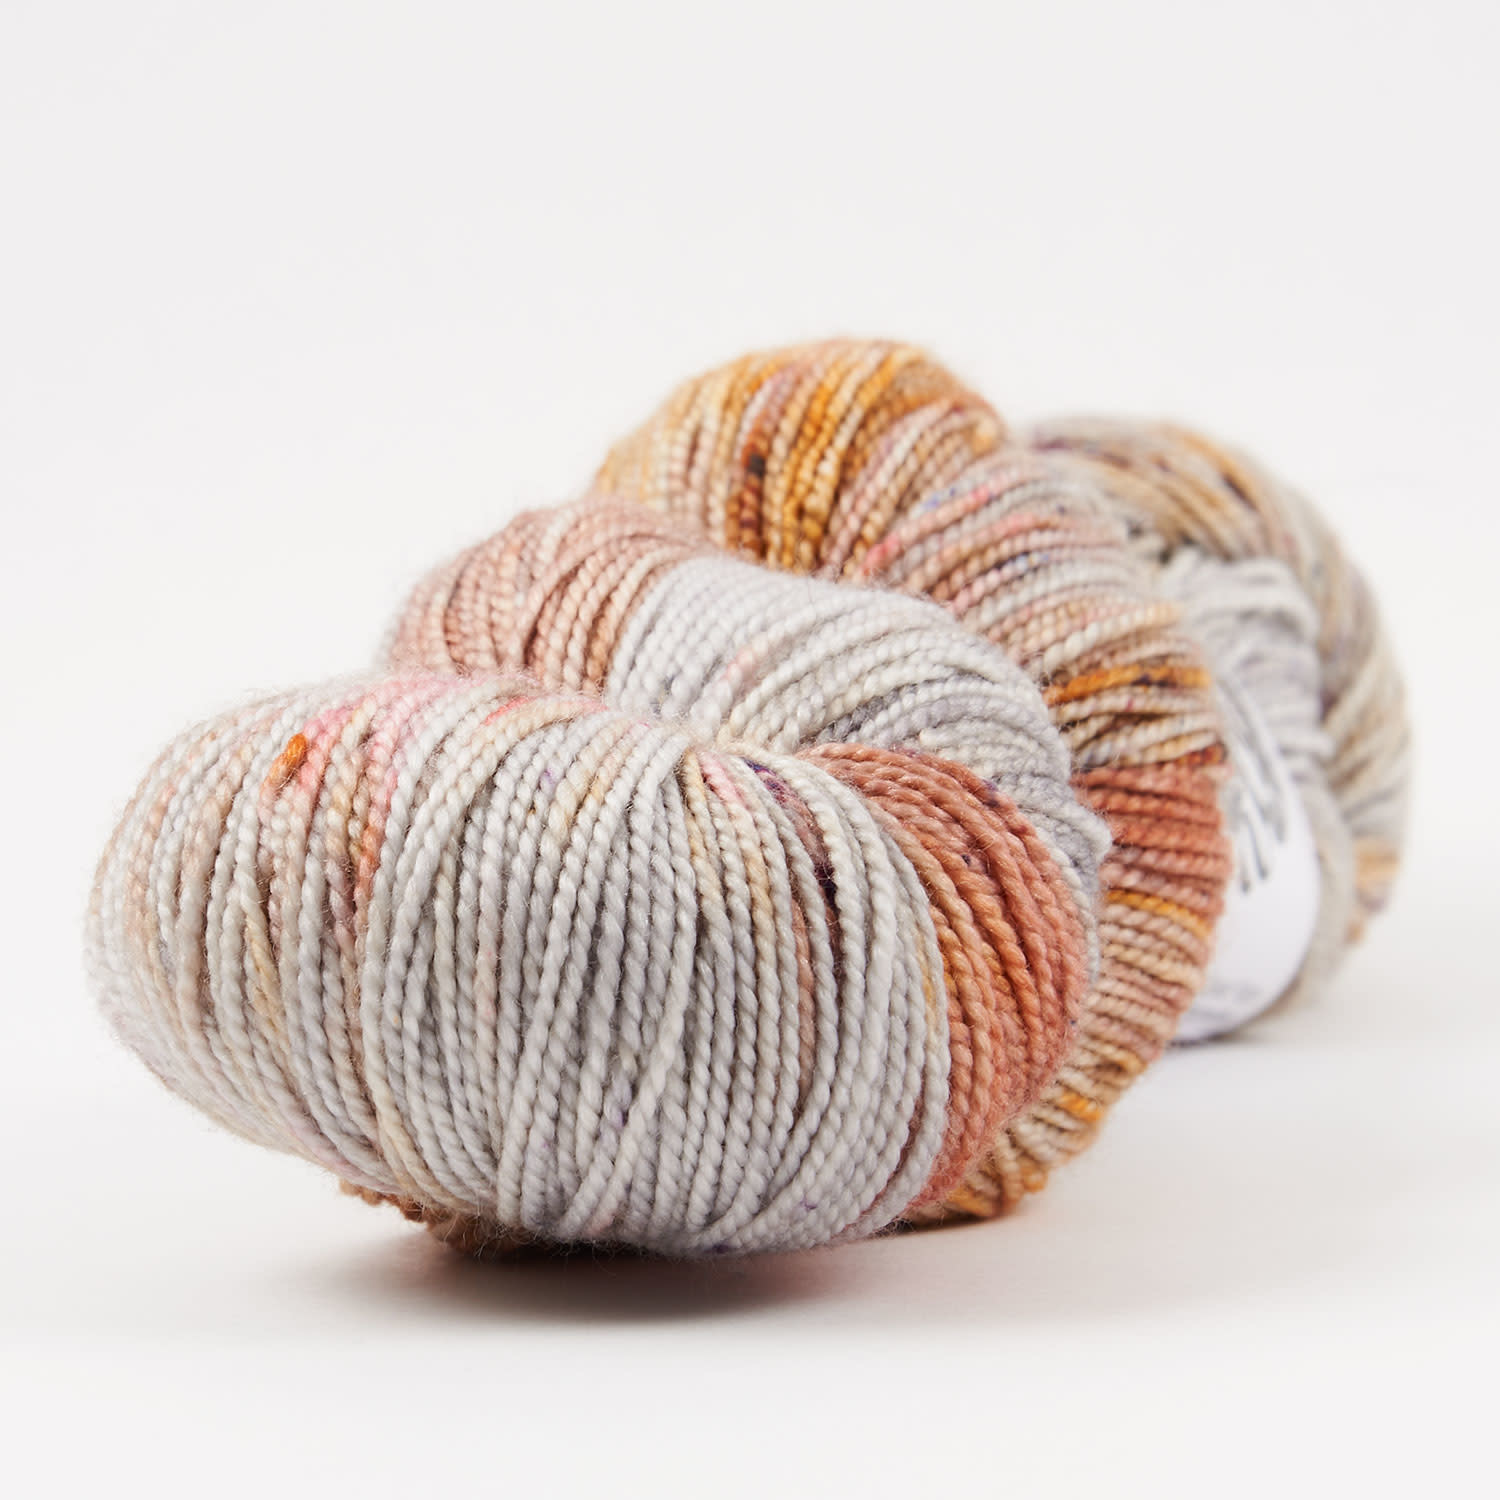 The Urban Purl LUX HI TWIST - SAQUARRA